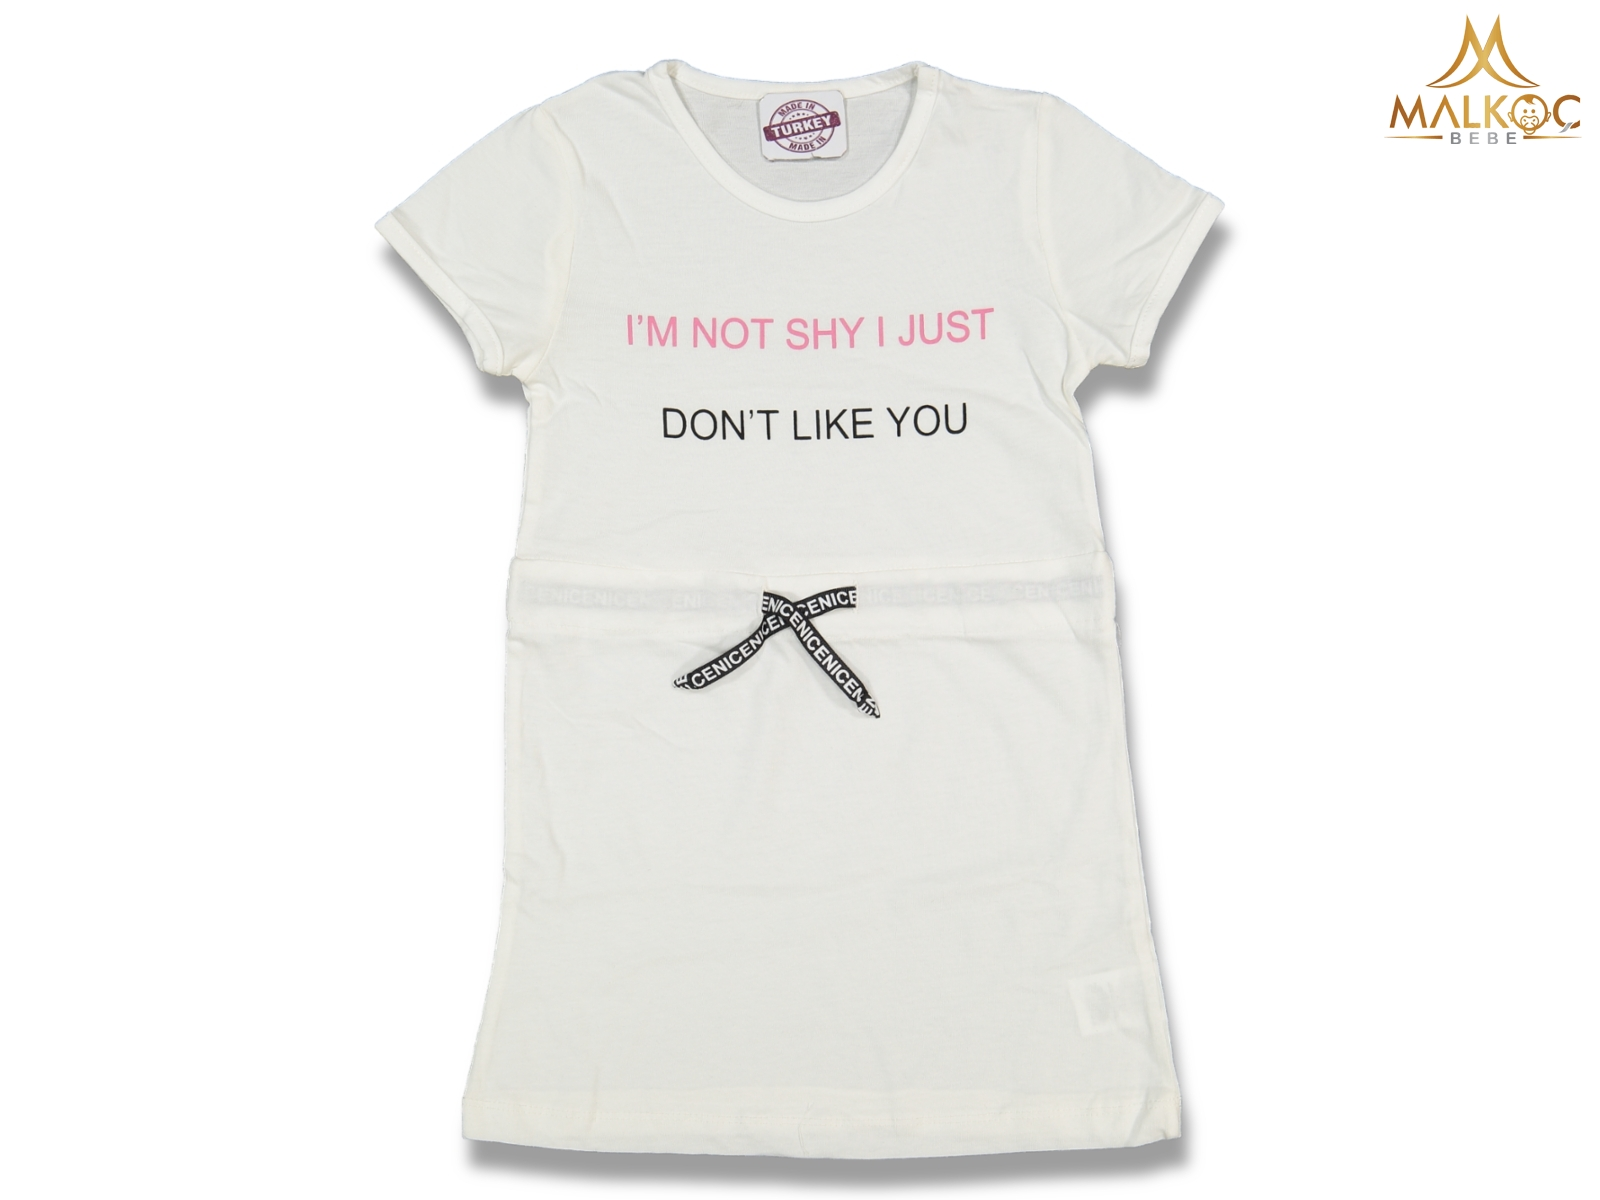 KIZ 1/4 YAŞ I'M NOT SHY JUST BASKI ELBİ